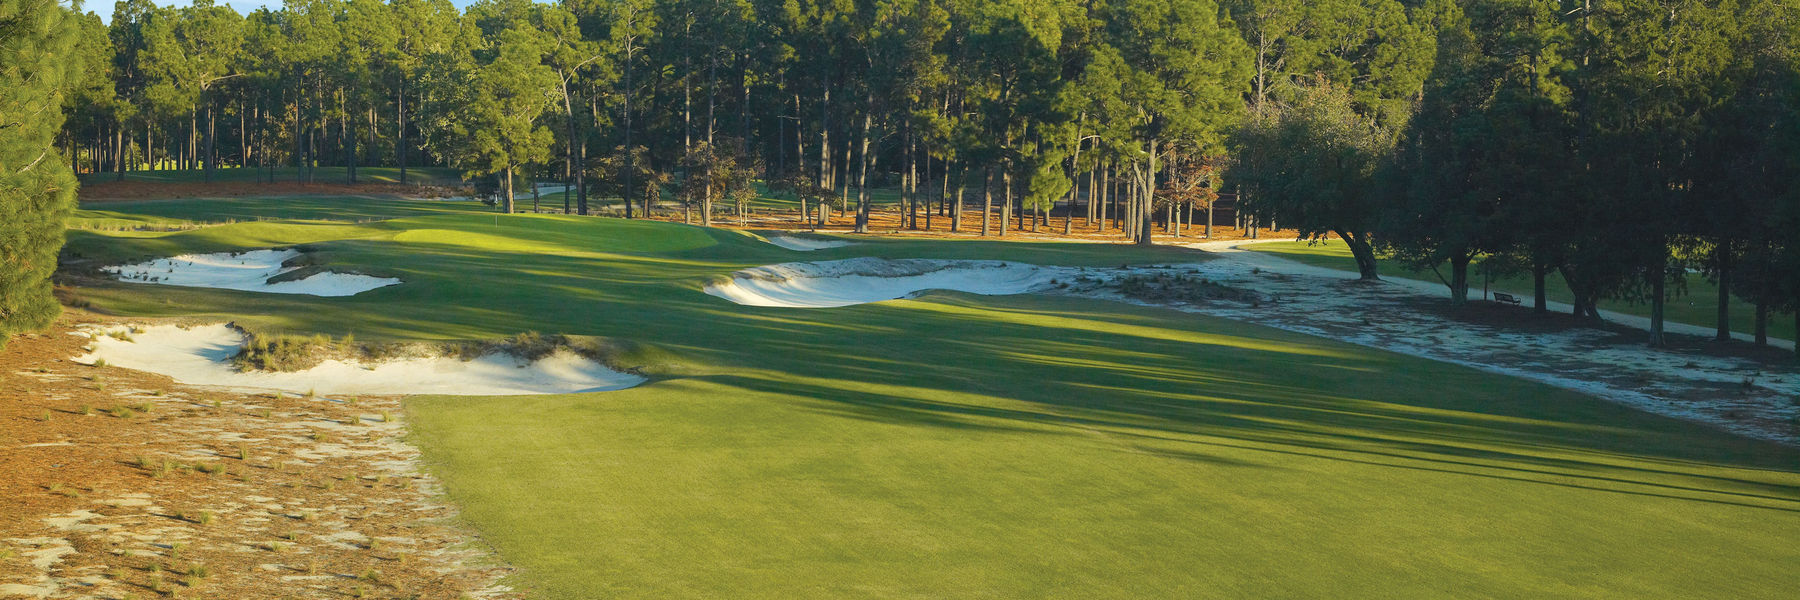 Golf Vacation Package - Pinehurst Resort - 3 nights, UNLIMITED Golf, and $100 Gift Card per person!